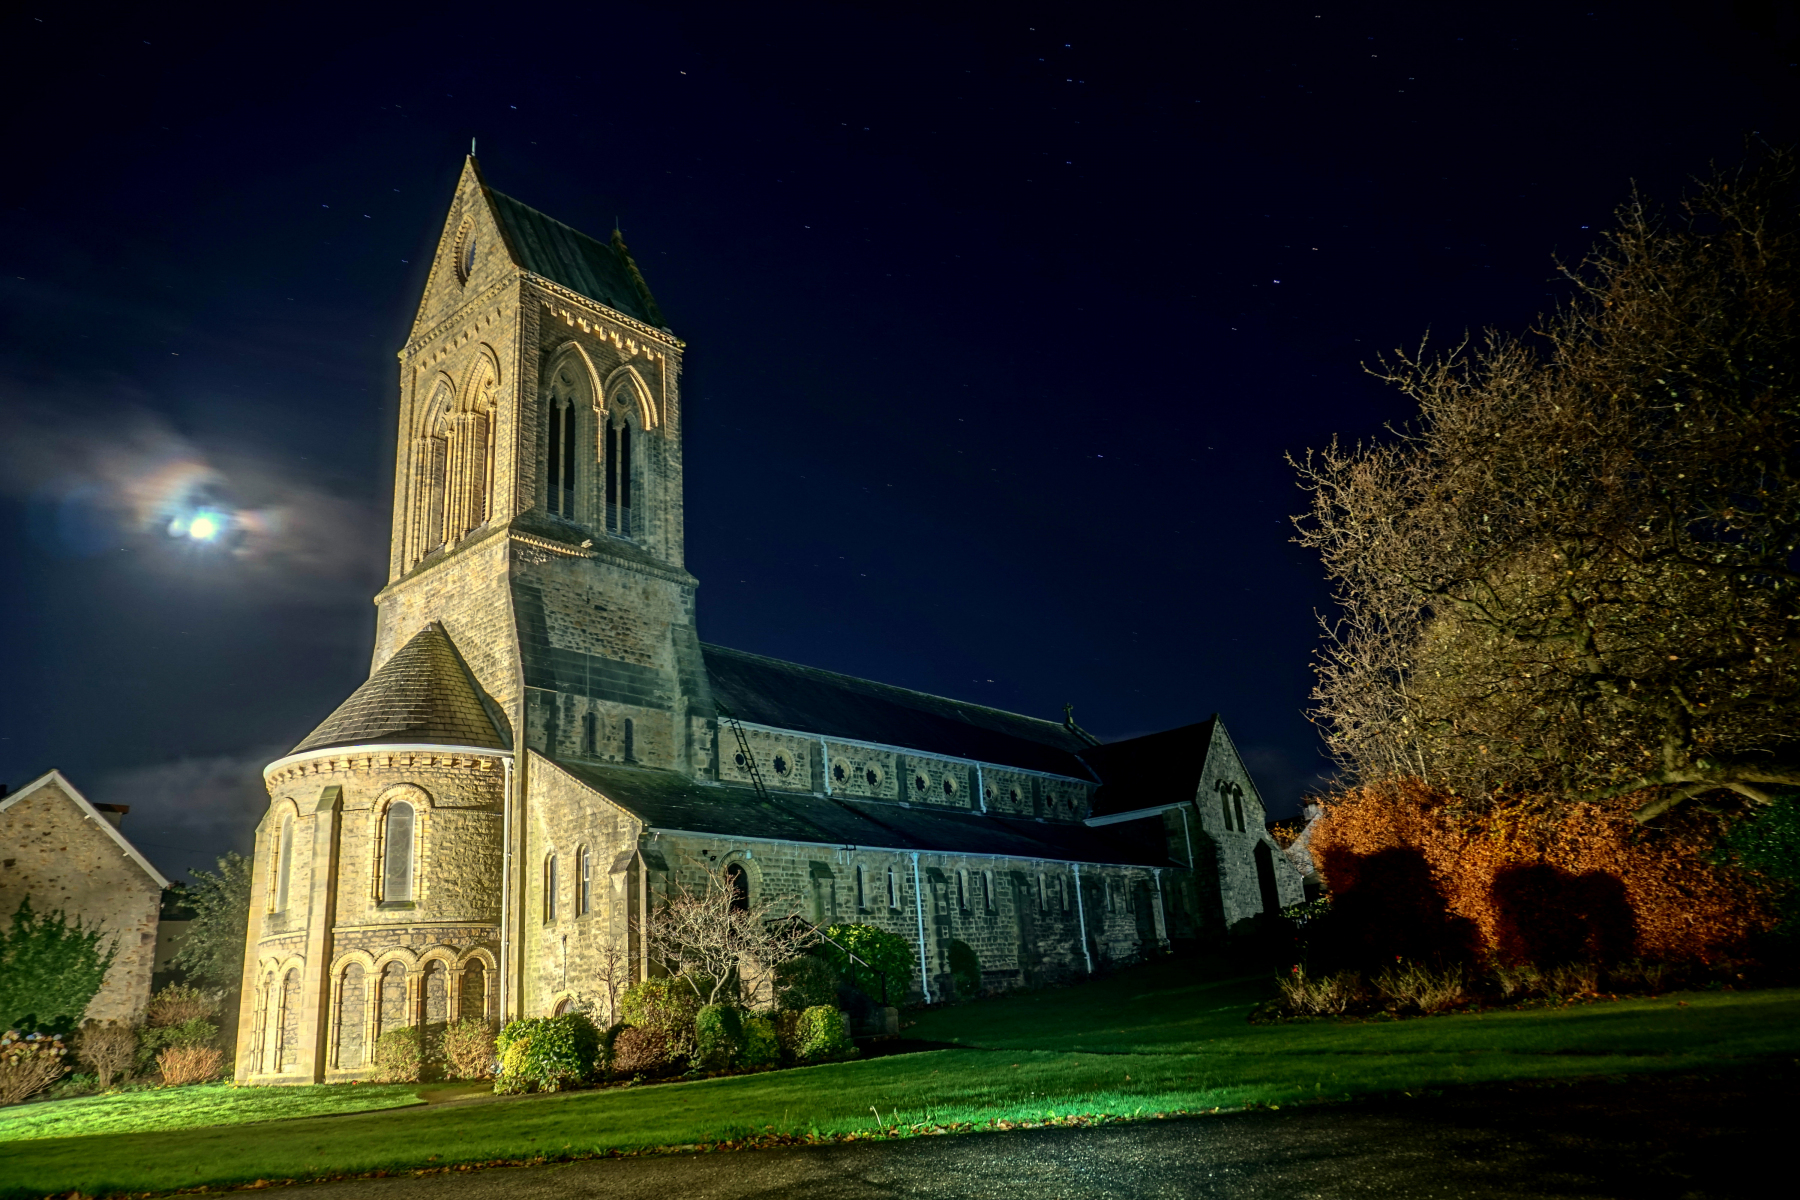 Church at Night (by Ian Greene)